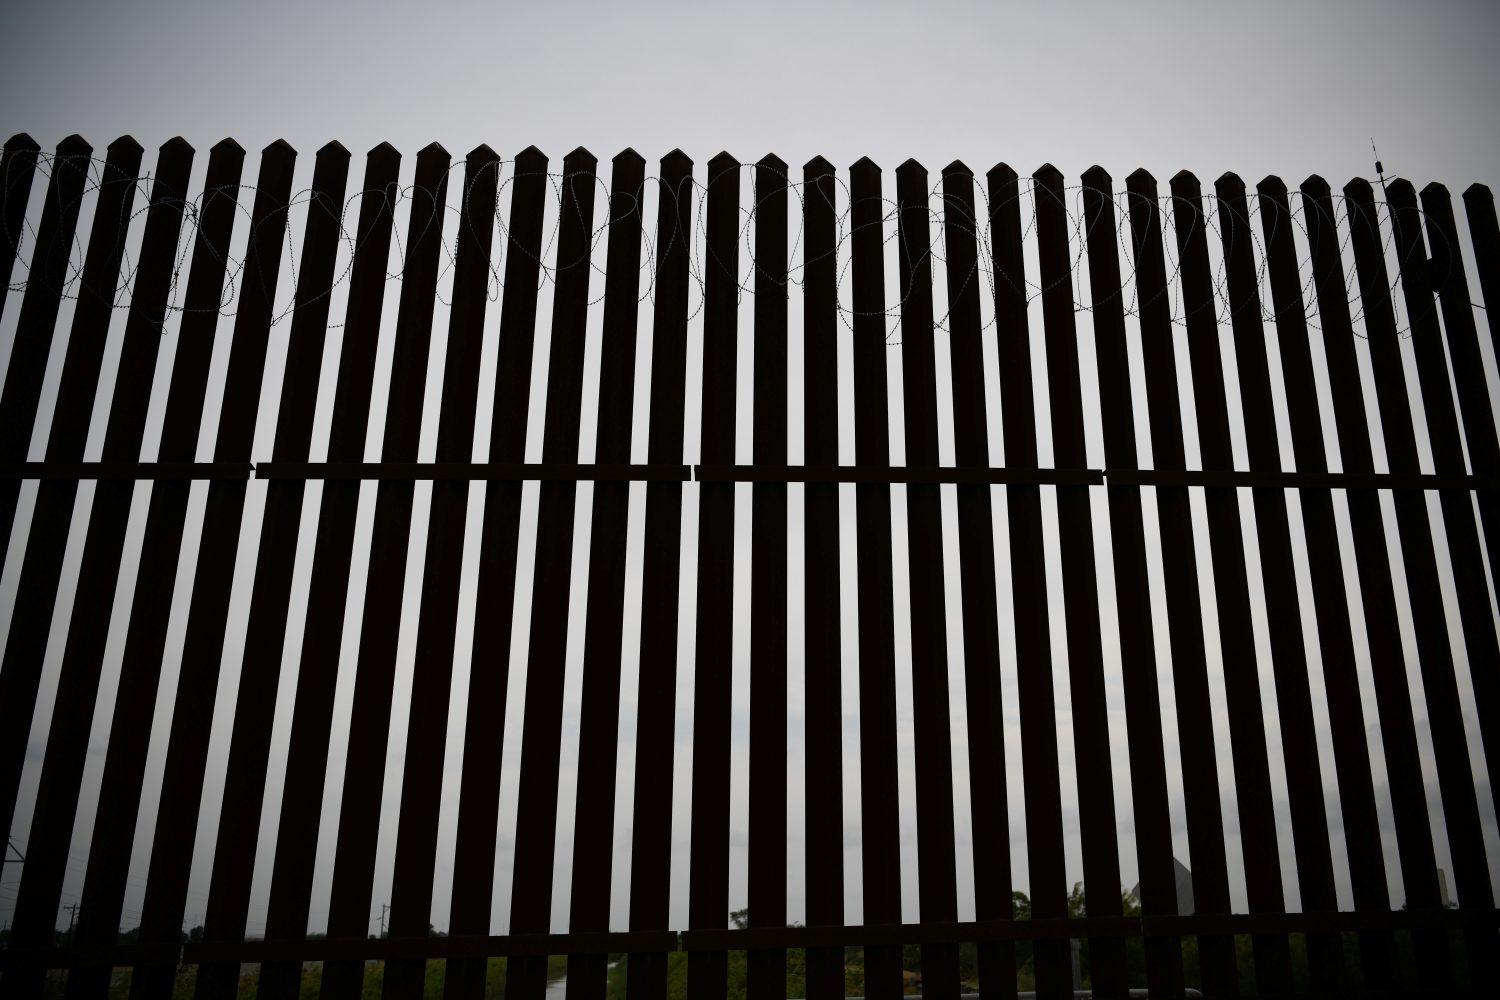 FILE PHOTO: Concertina wire is seen atop a section of border fence near the U.S.-Mexico border in Donna, Texas, U.S. May 2, 2019. REUTERS/Loren Elliott